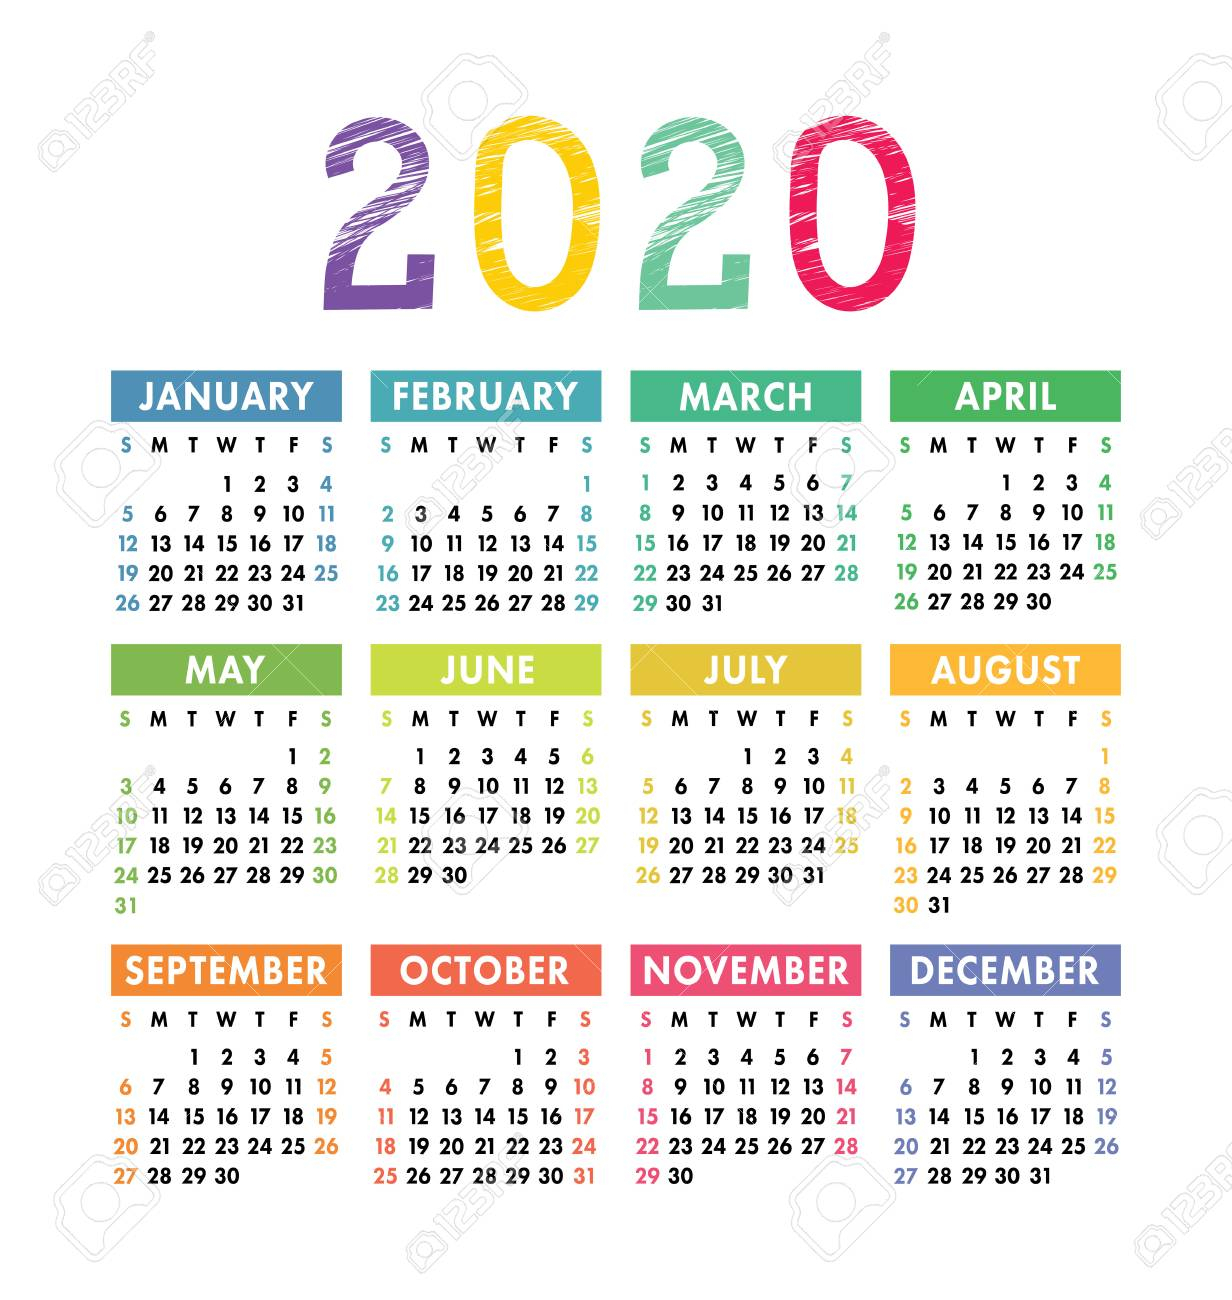 Printable Pocket Calendar 2020 - Wpa.wpart.co inside 2020 Pocket Calendars To Print